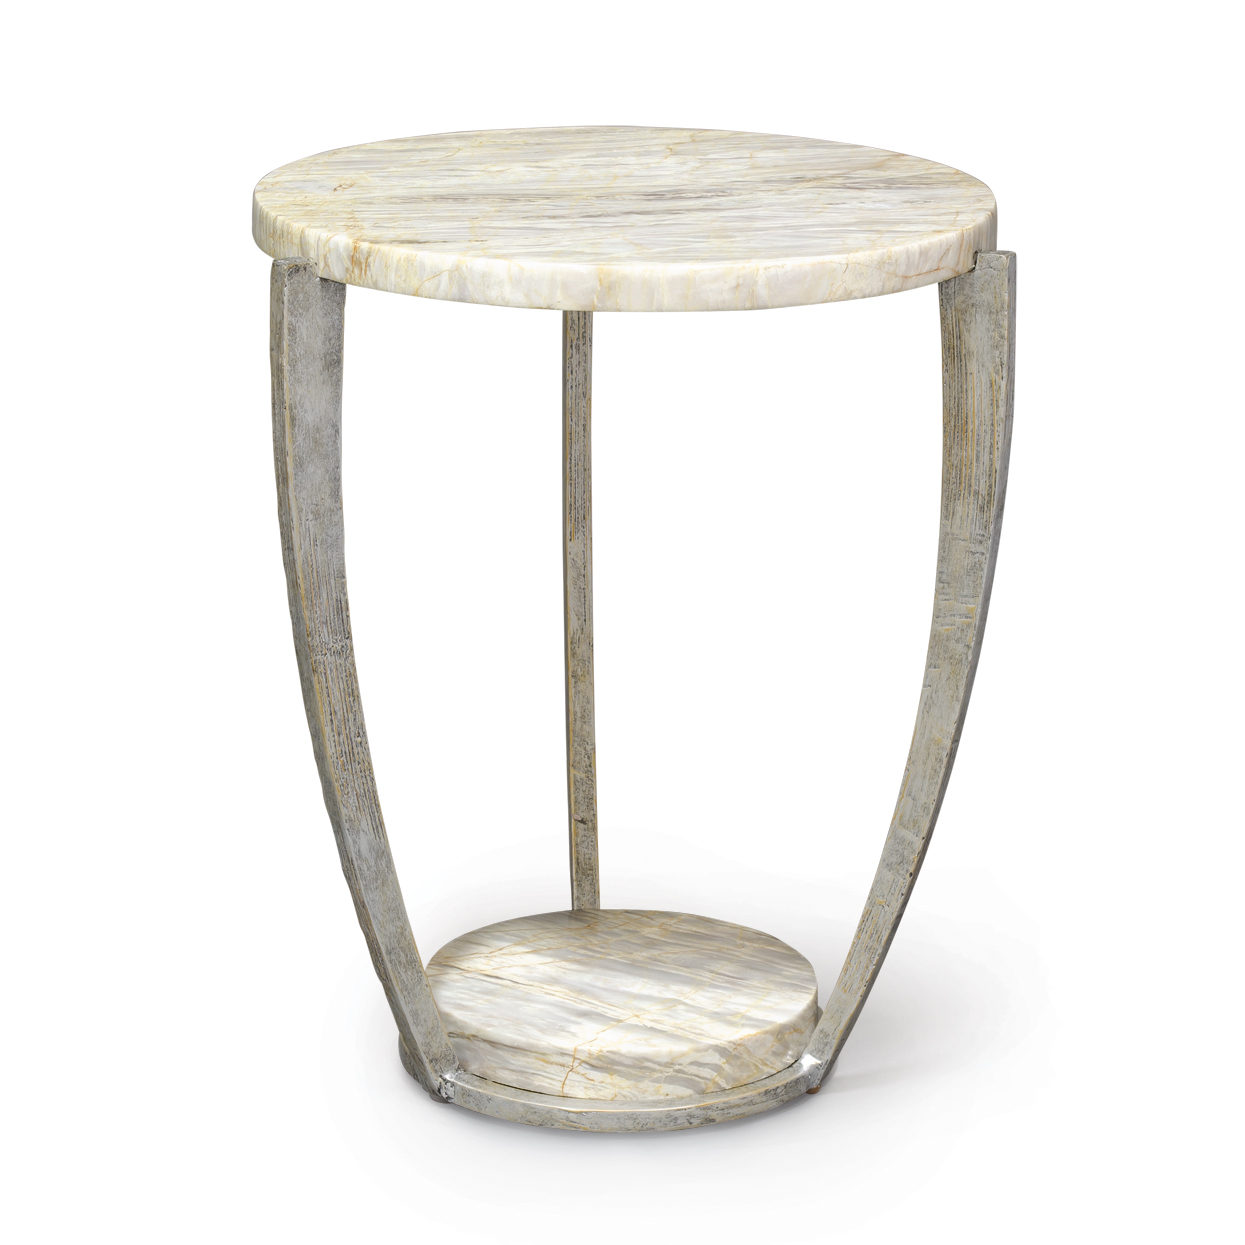 exciting marble accent table set bistro threshold top wood round small antique and faux killian target metal black white nero full size ashley furniture bedding outdoor patio